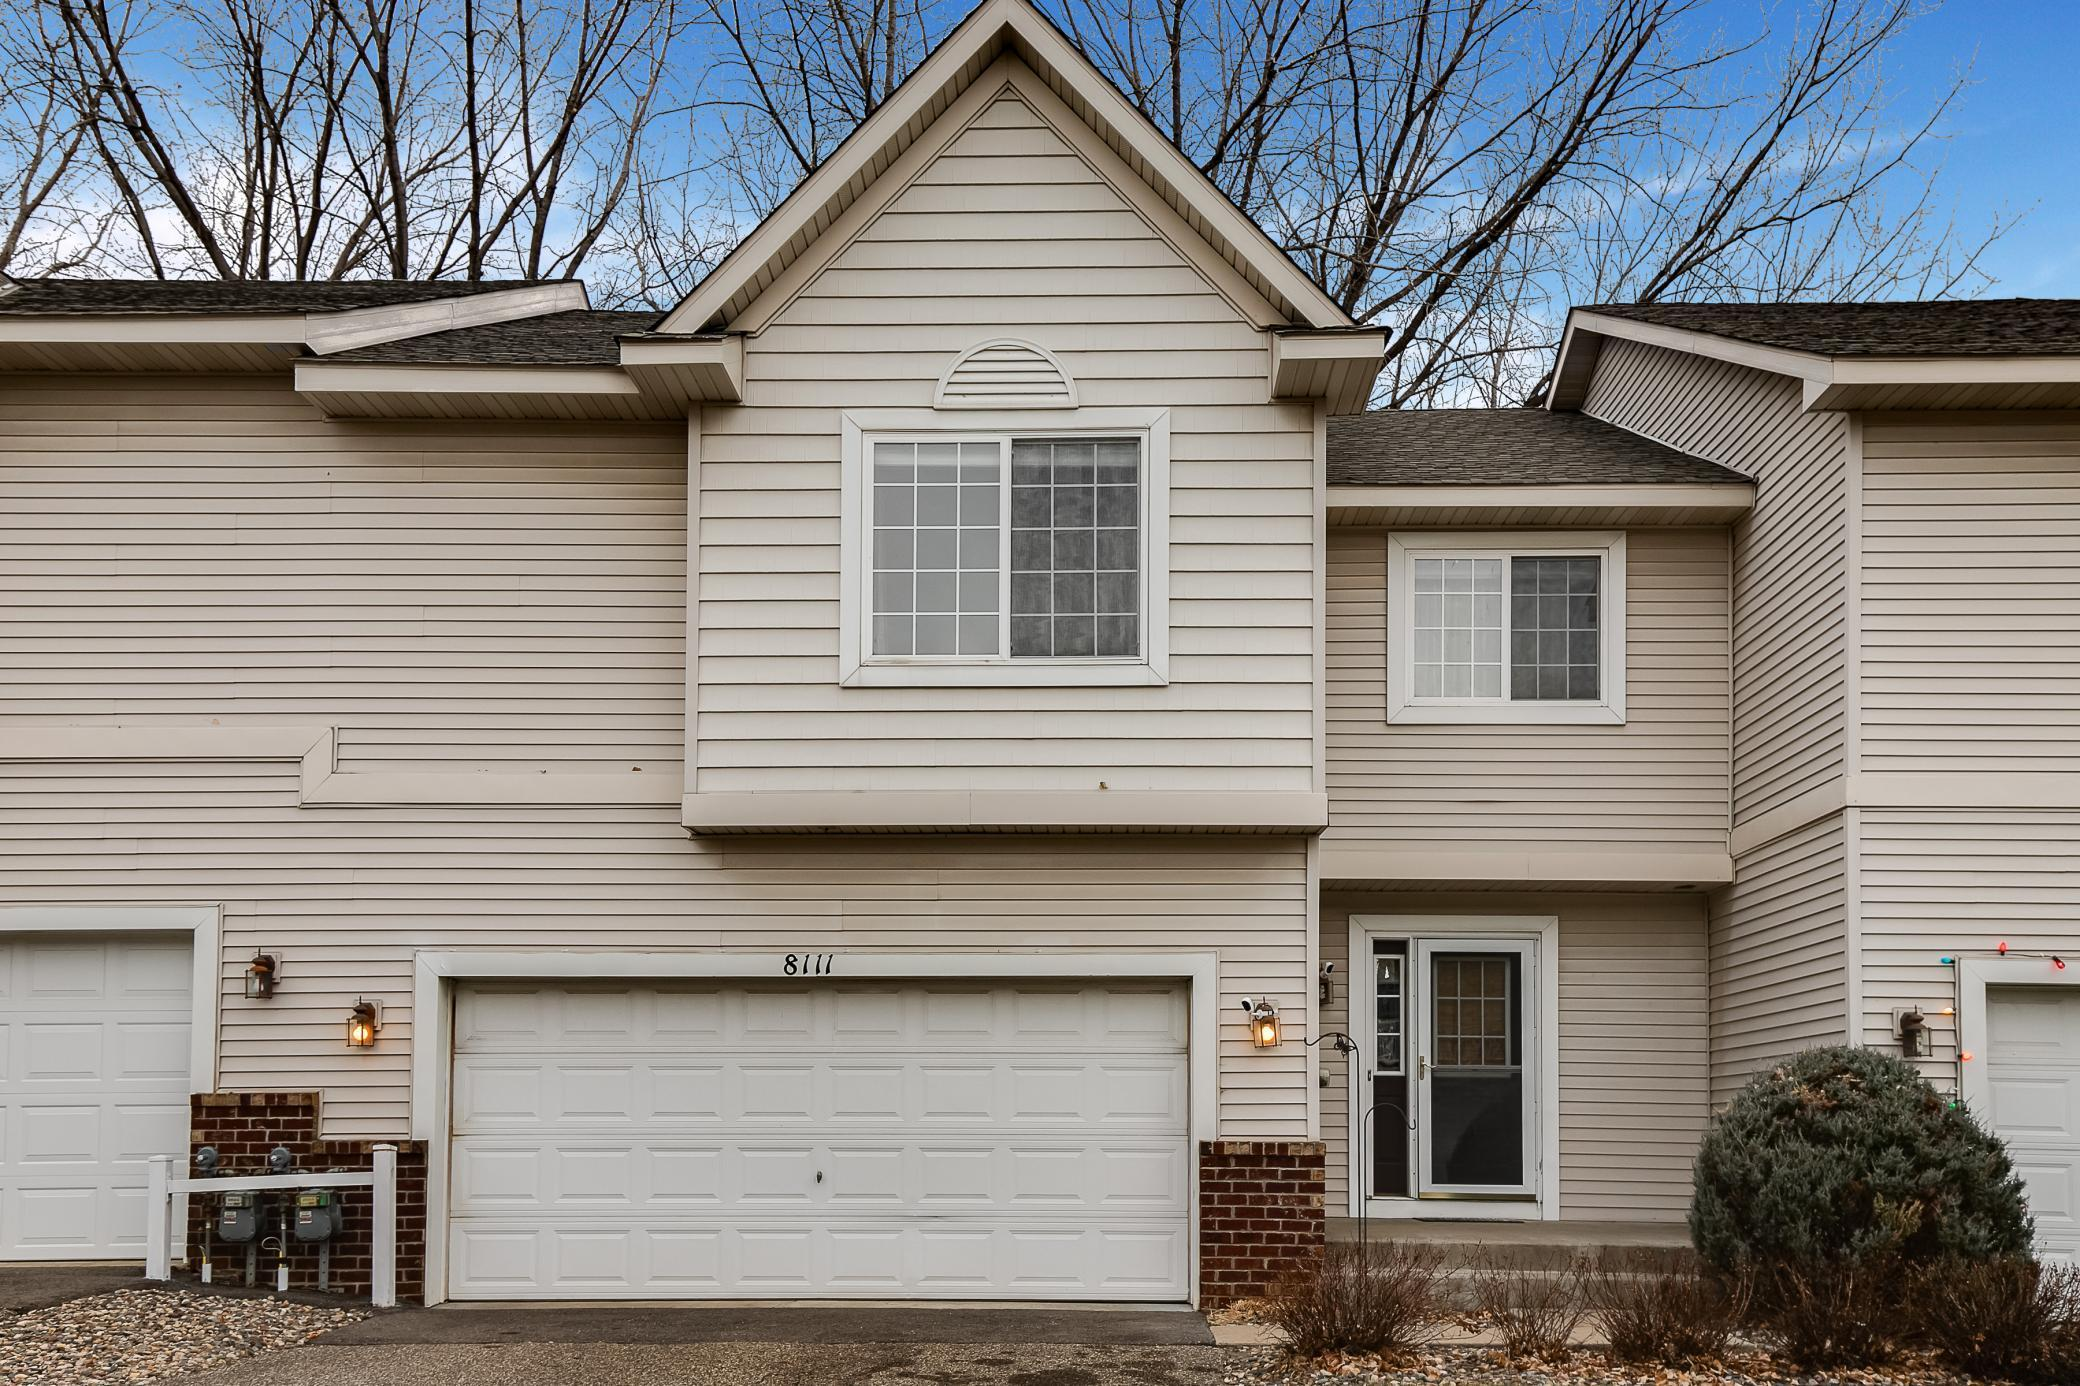 8111 Dana Path Property Photo - Inver Grove Heights, MN real estate listing